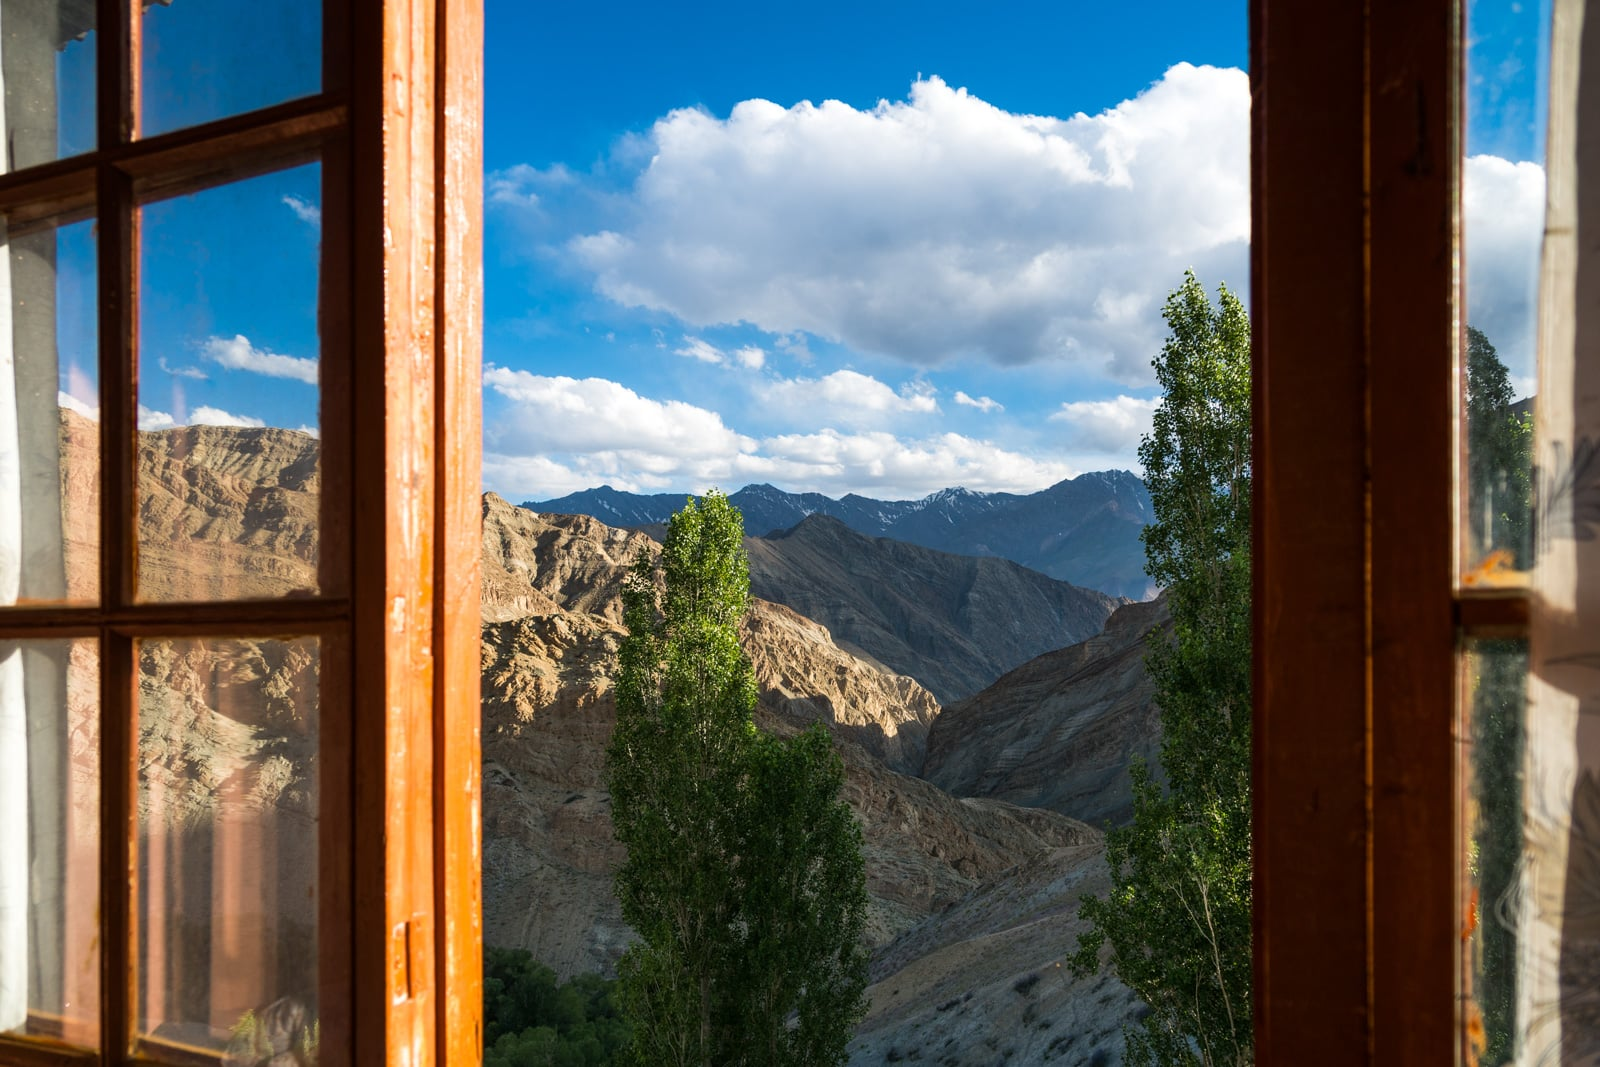 Short 3-day itinerary and guide to the Sham Valley trek in Ladakh, India - View out a homestay window in Yangthang village - Lost With Purpose travel blog